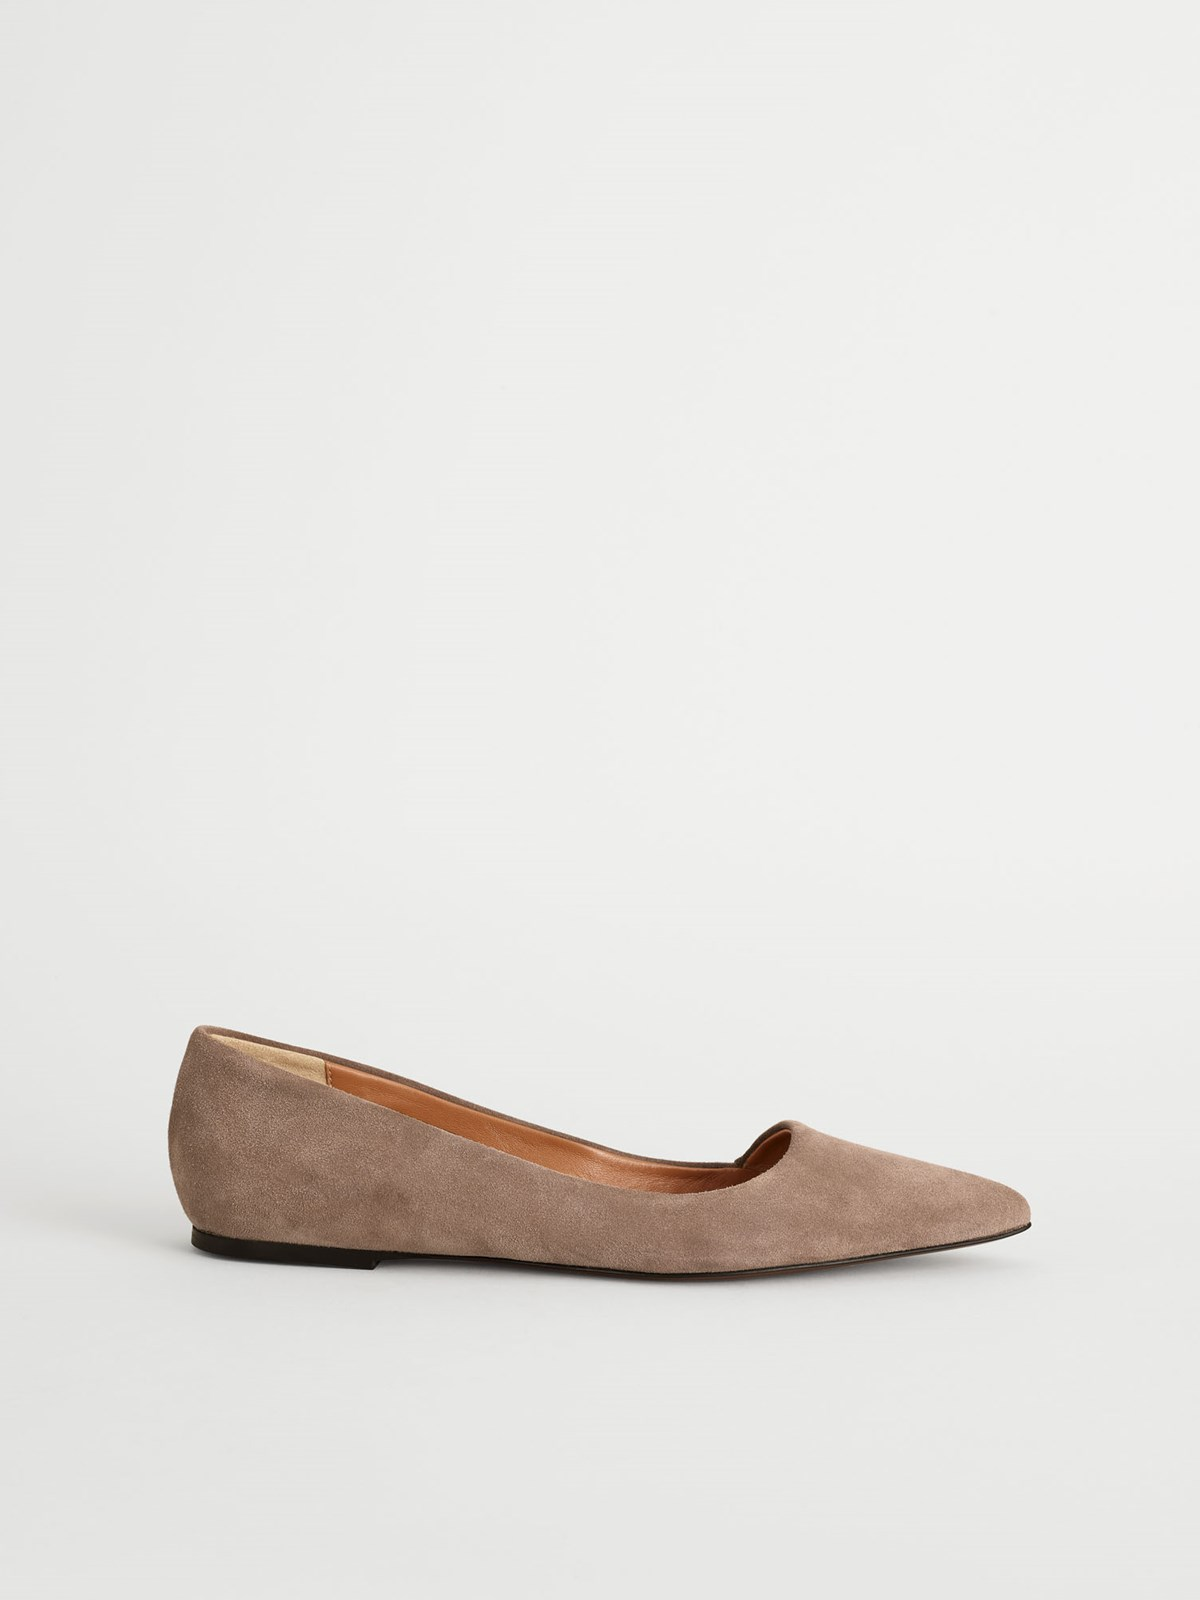 San cataldo Almond Ballerinas